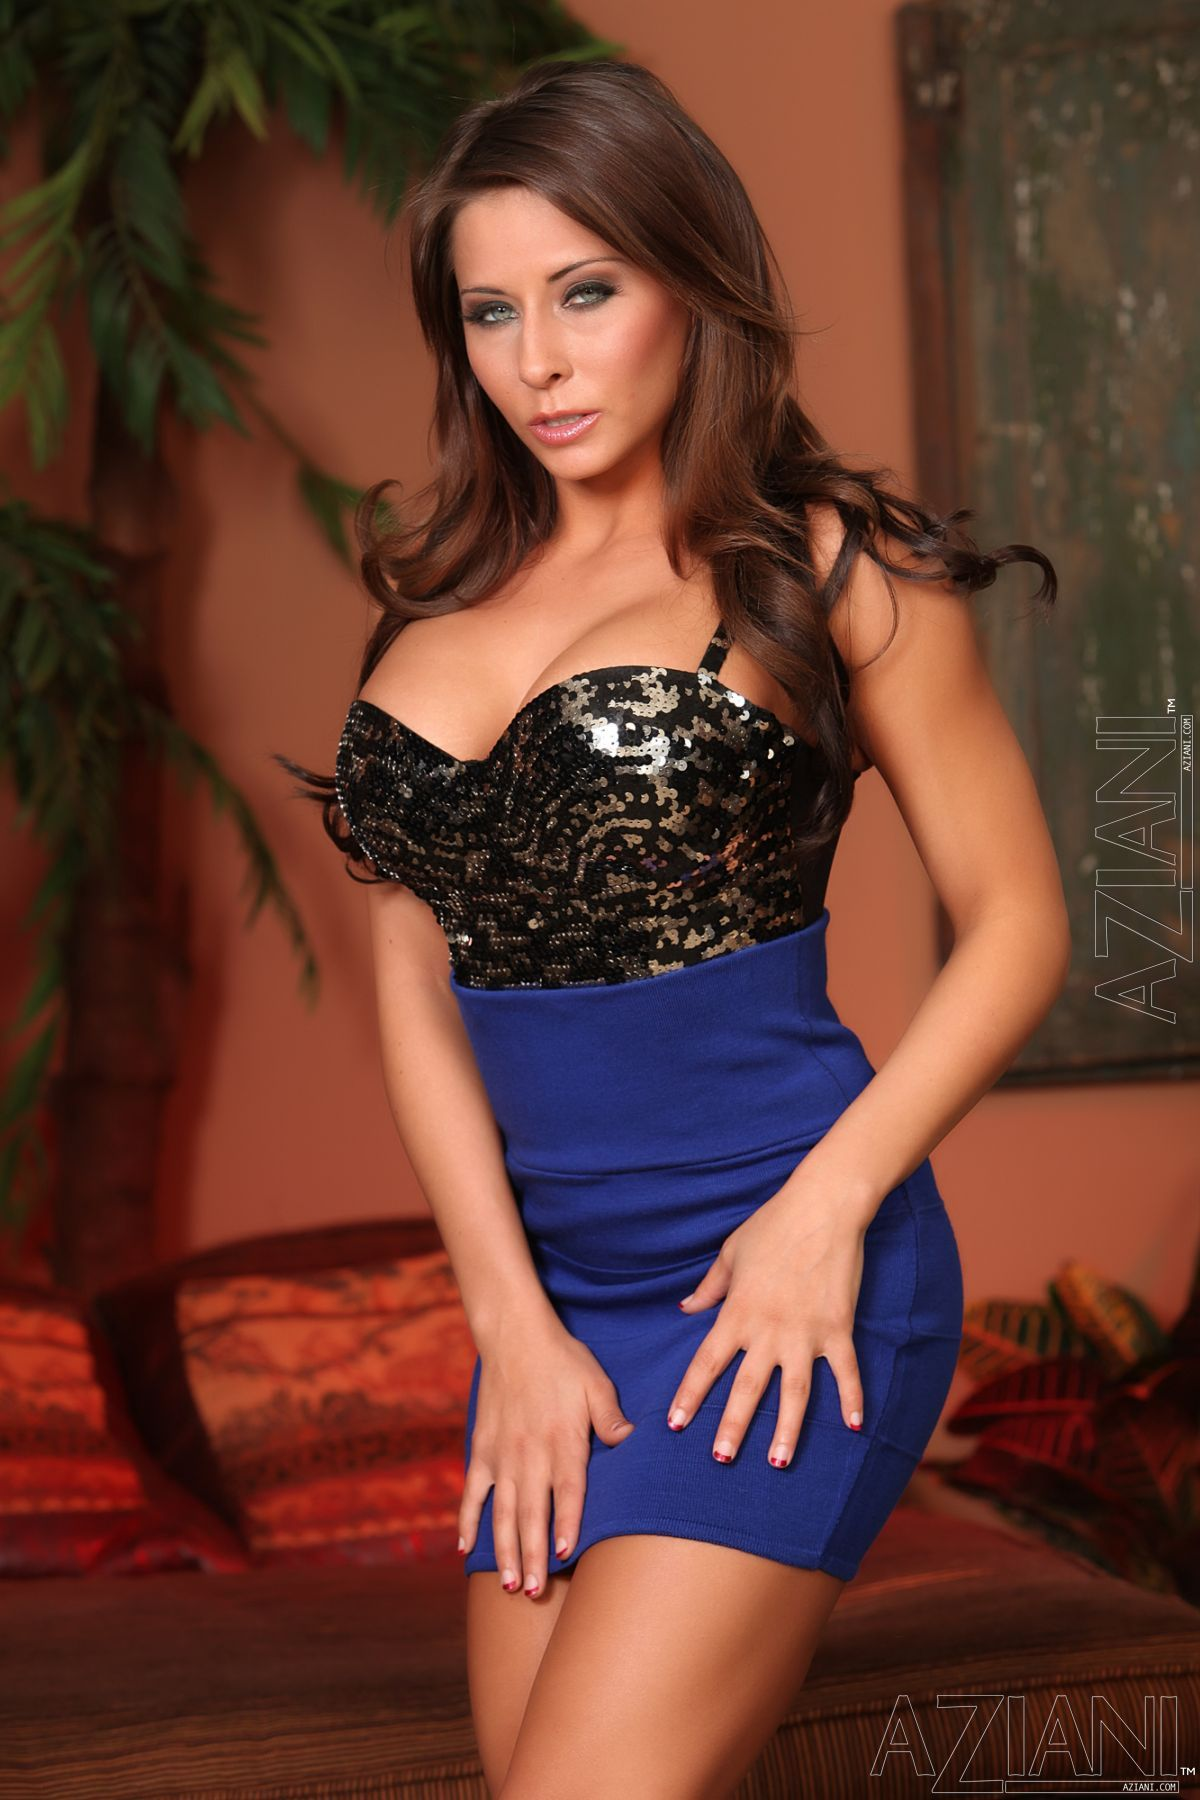 Madison ivy retail therapy